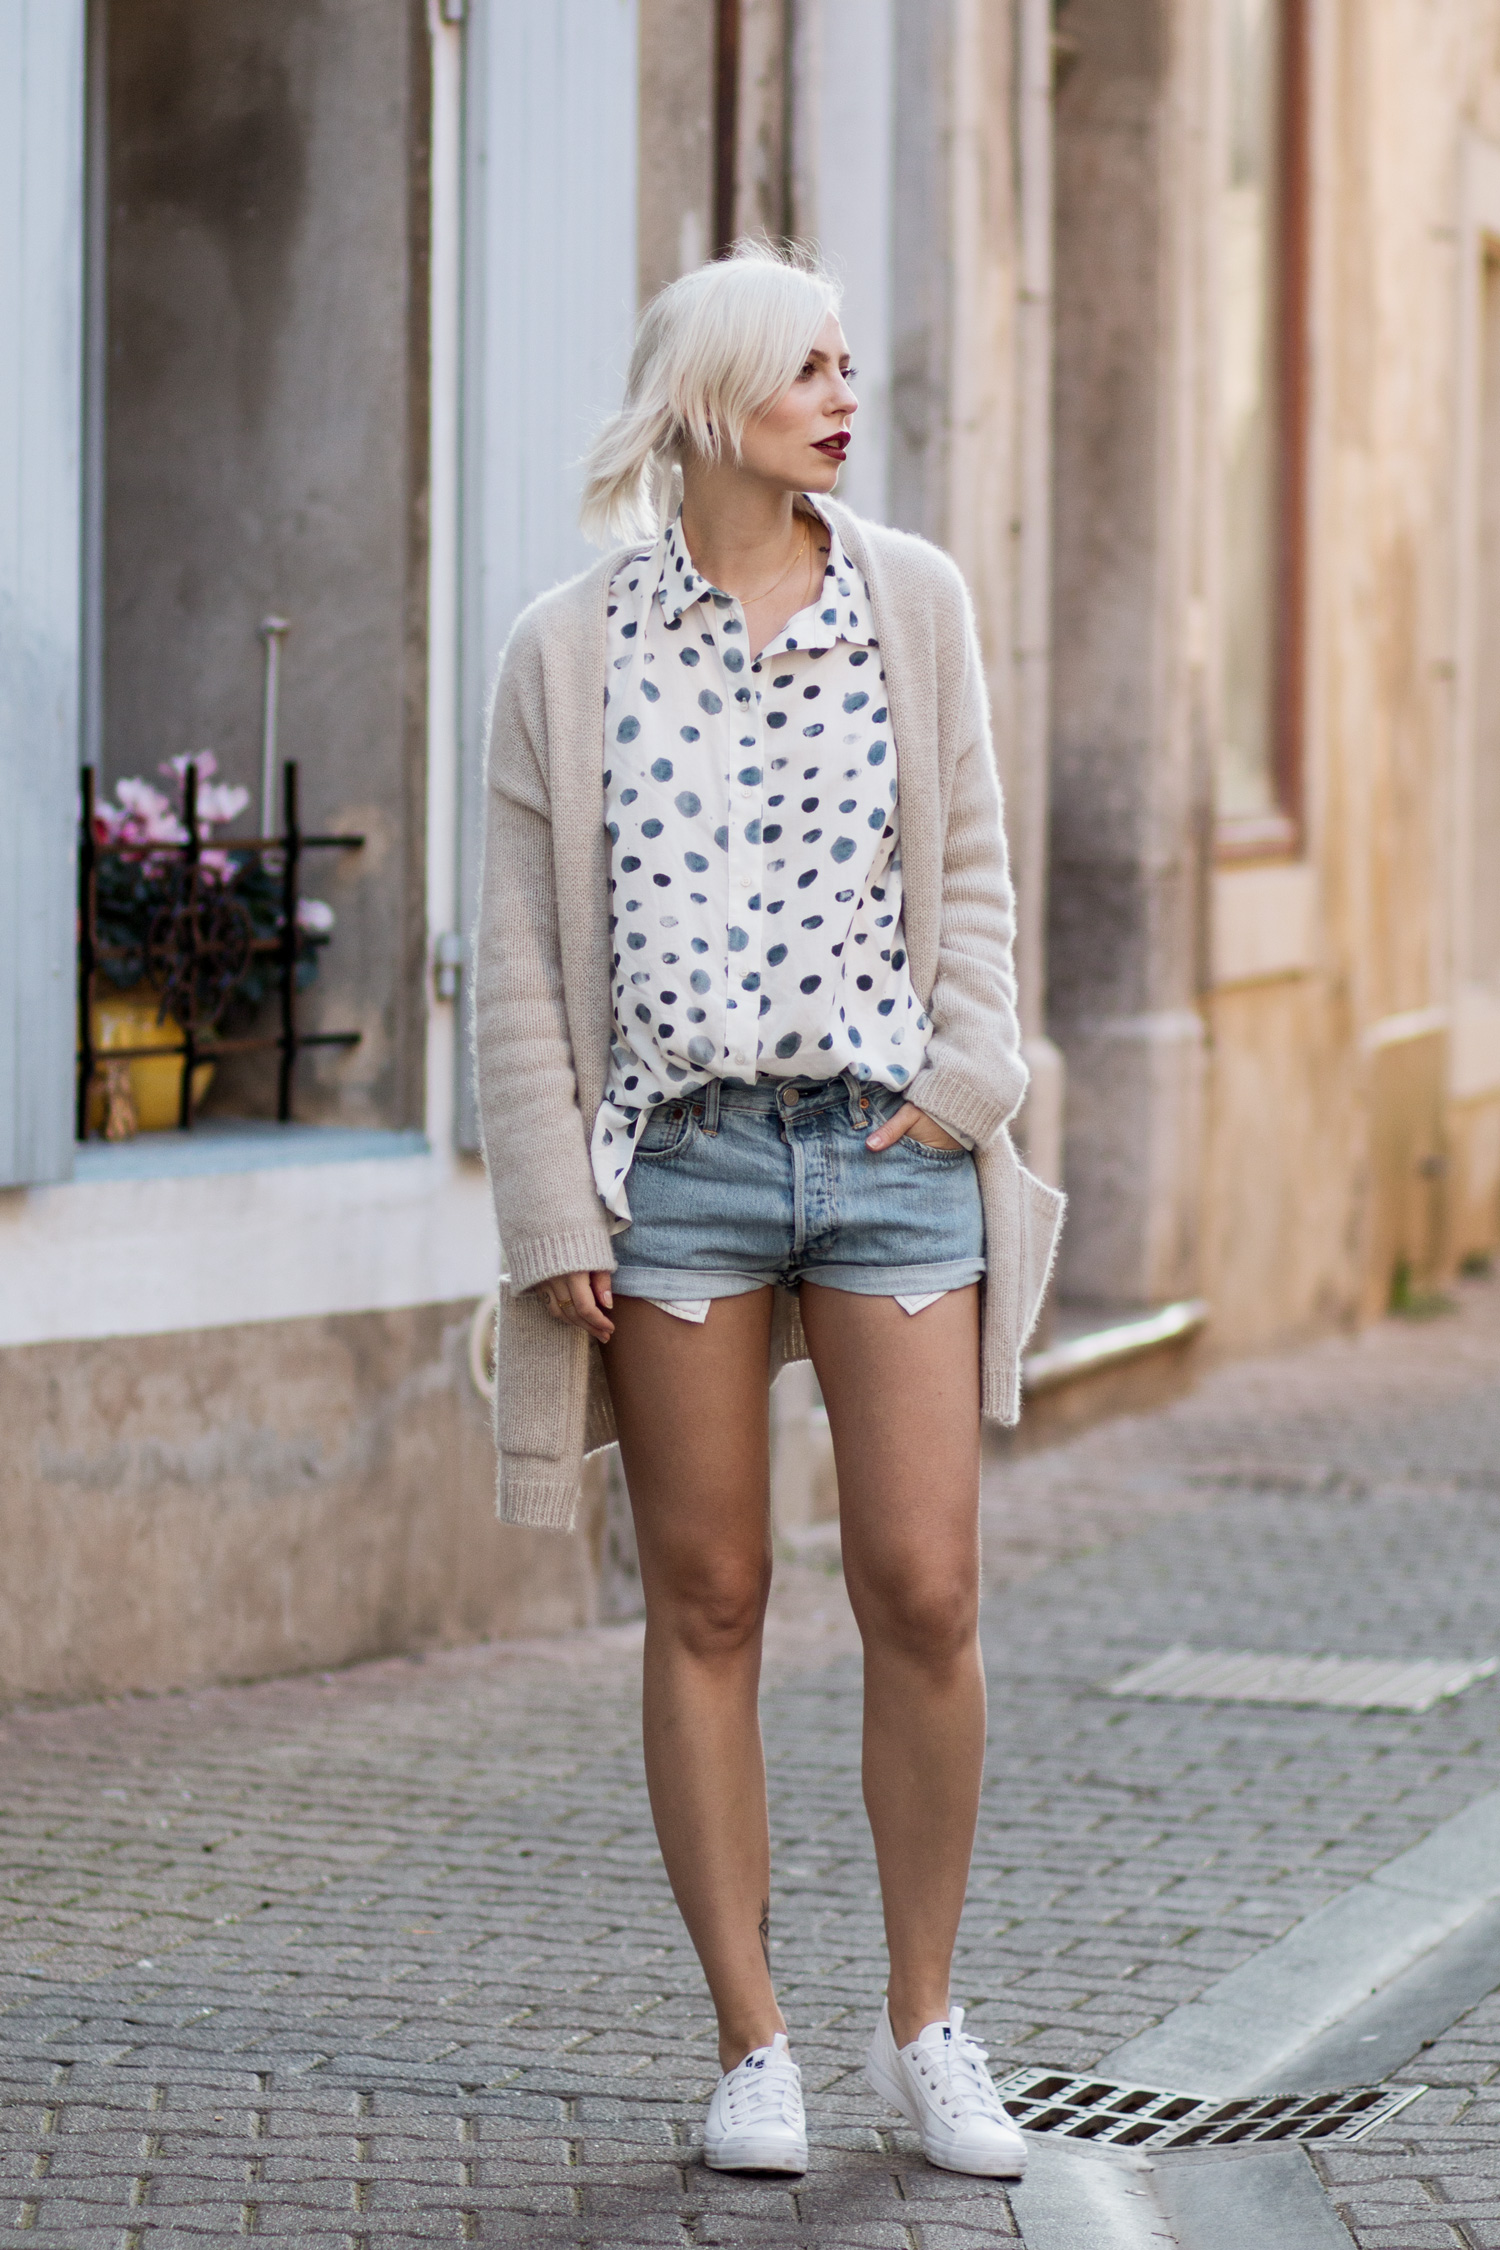 view more details on my blog | this outfit pictures were taken in Gruissan, South France | wearing 5Preview dots shirt, white Keds sneaker, DIY Levi's shorts, cashmere Strenesse cardigan | mediterranean flair & fashion